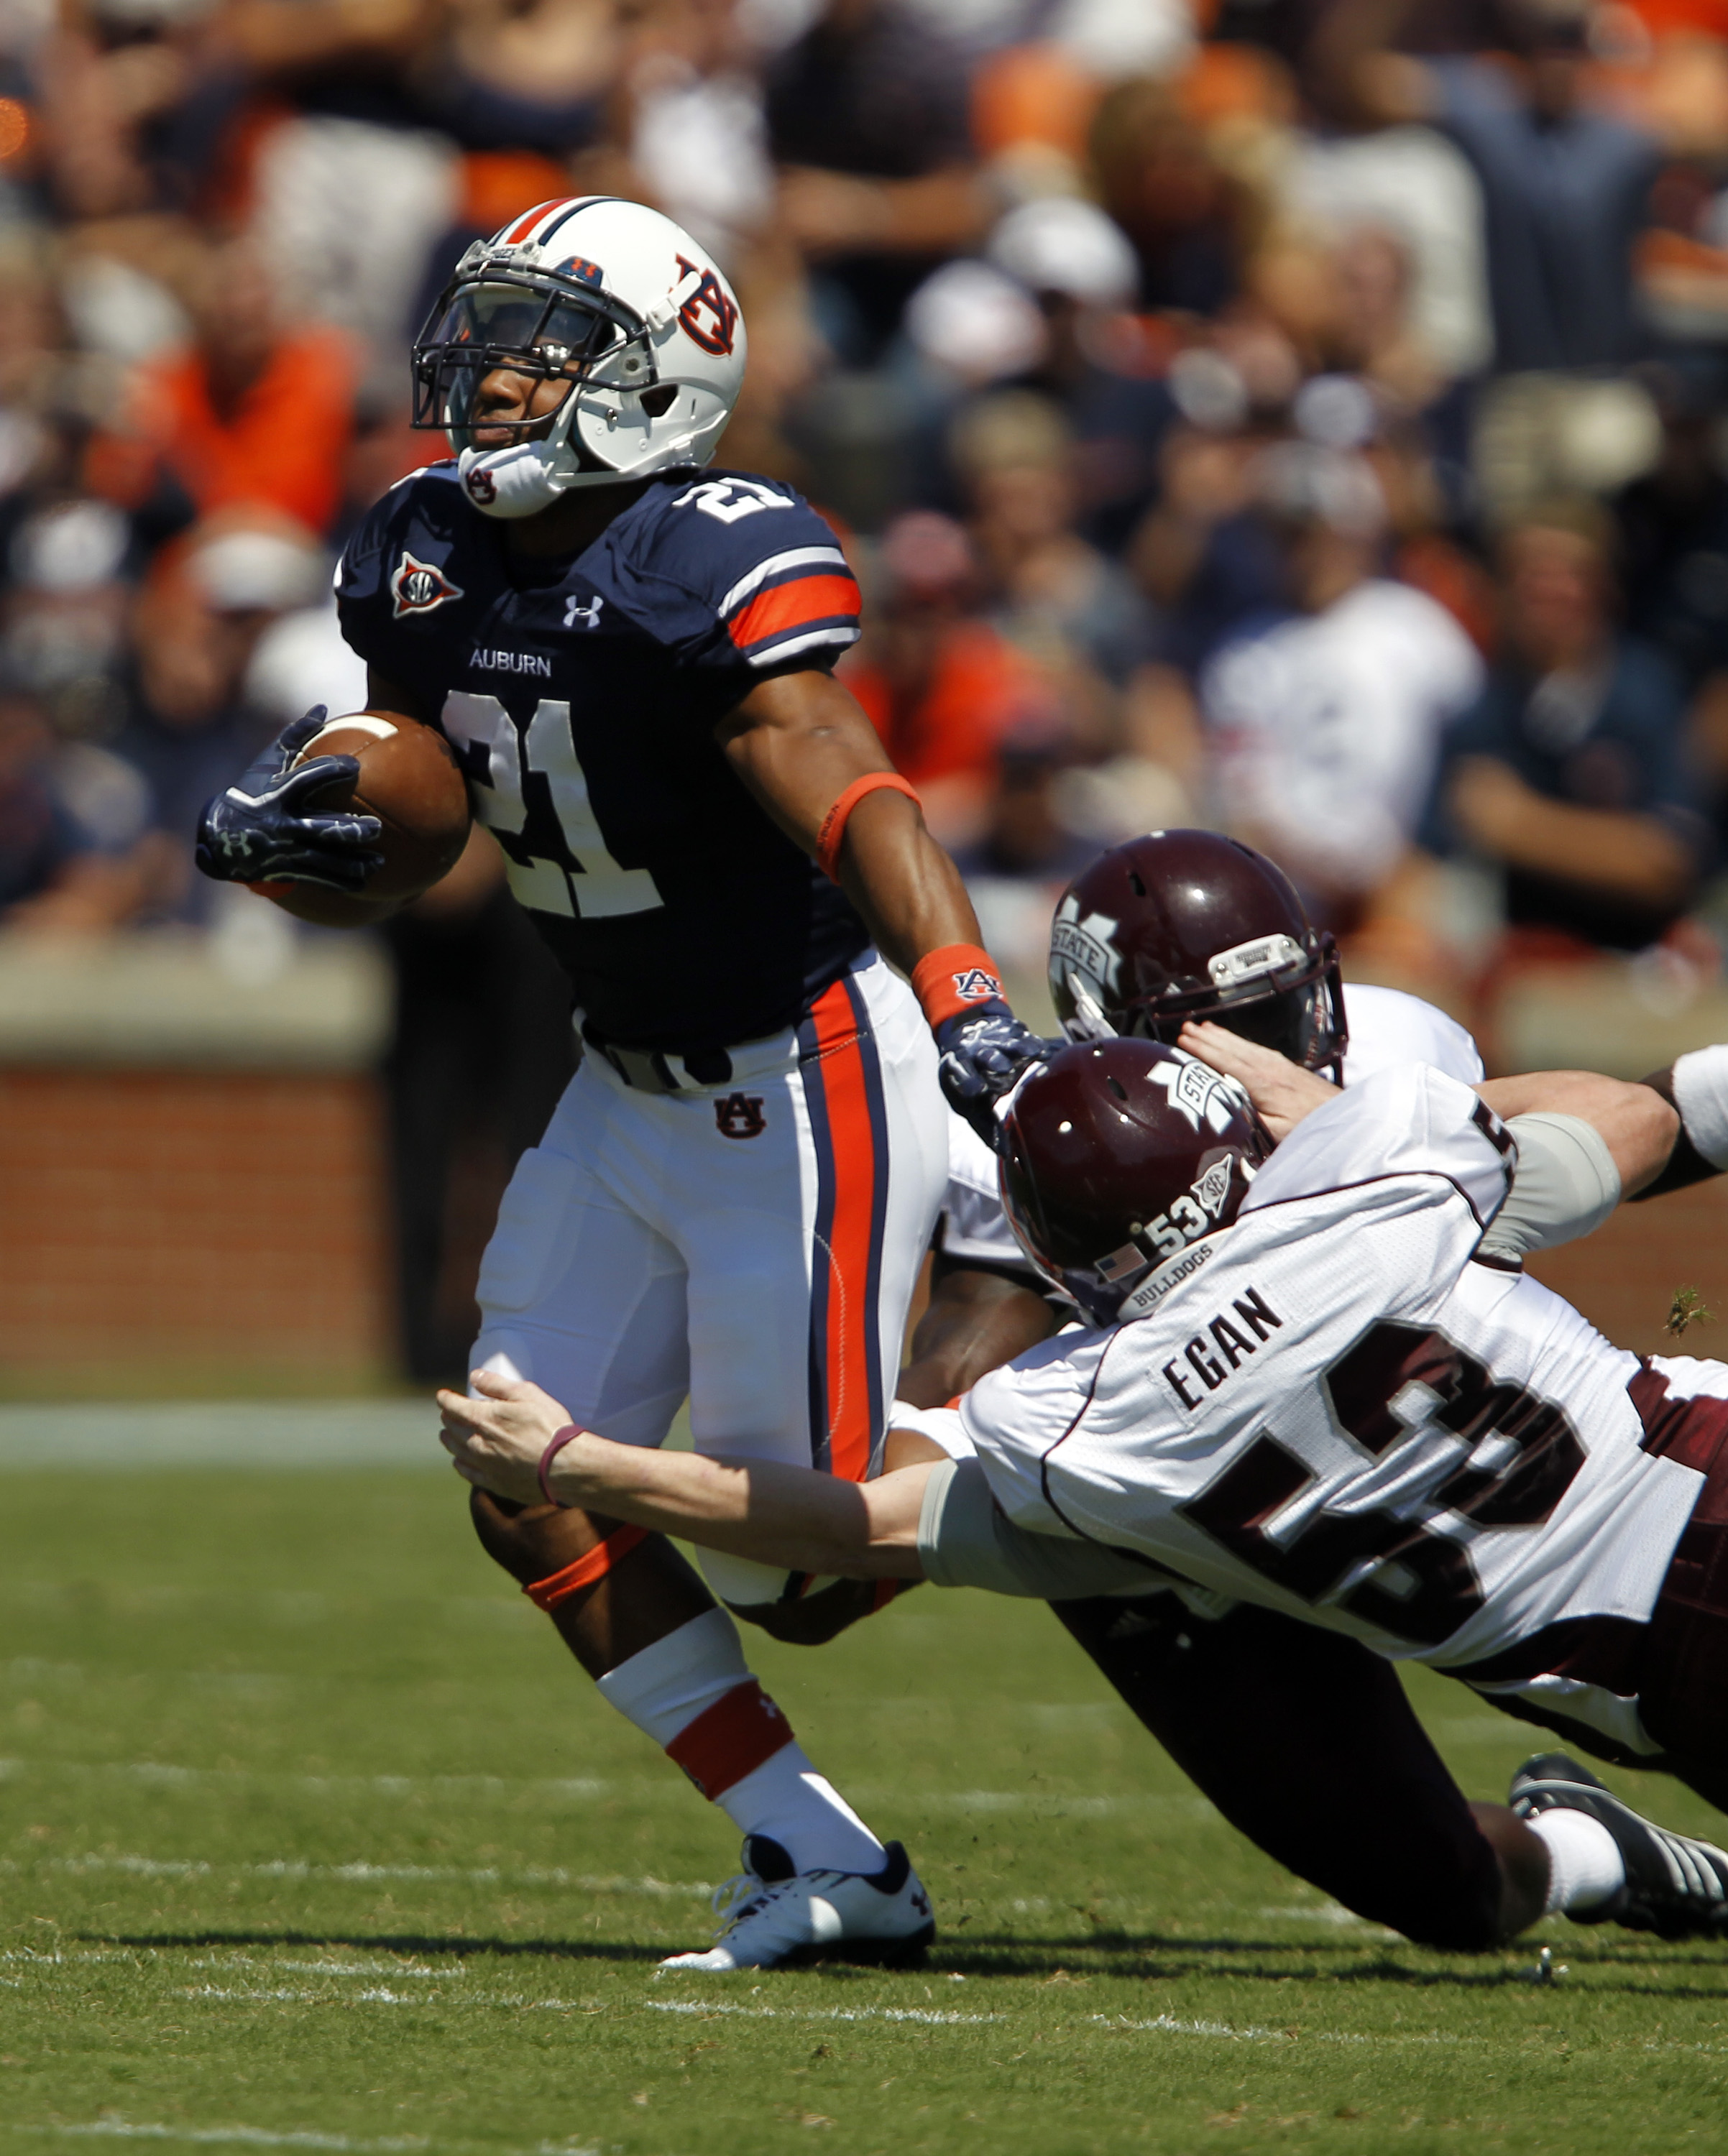 Tre Mason, whose dad is in De La Soul, is an excellent return man for Auburn. (Getty Images)